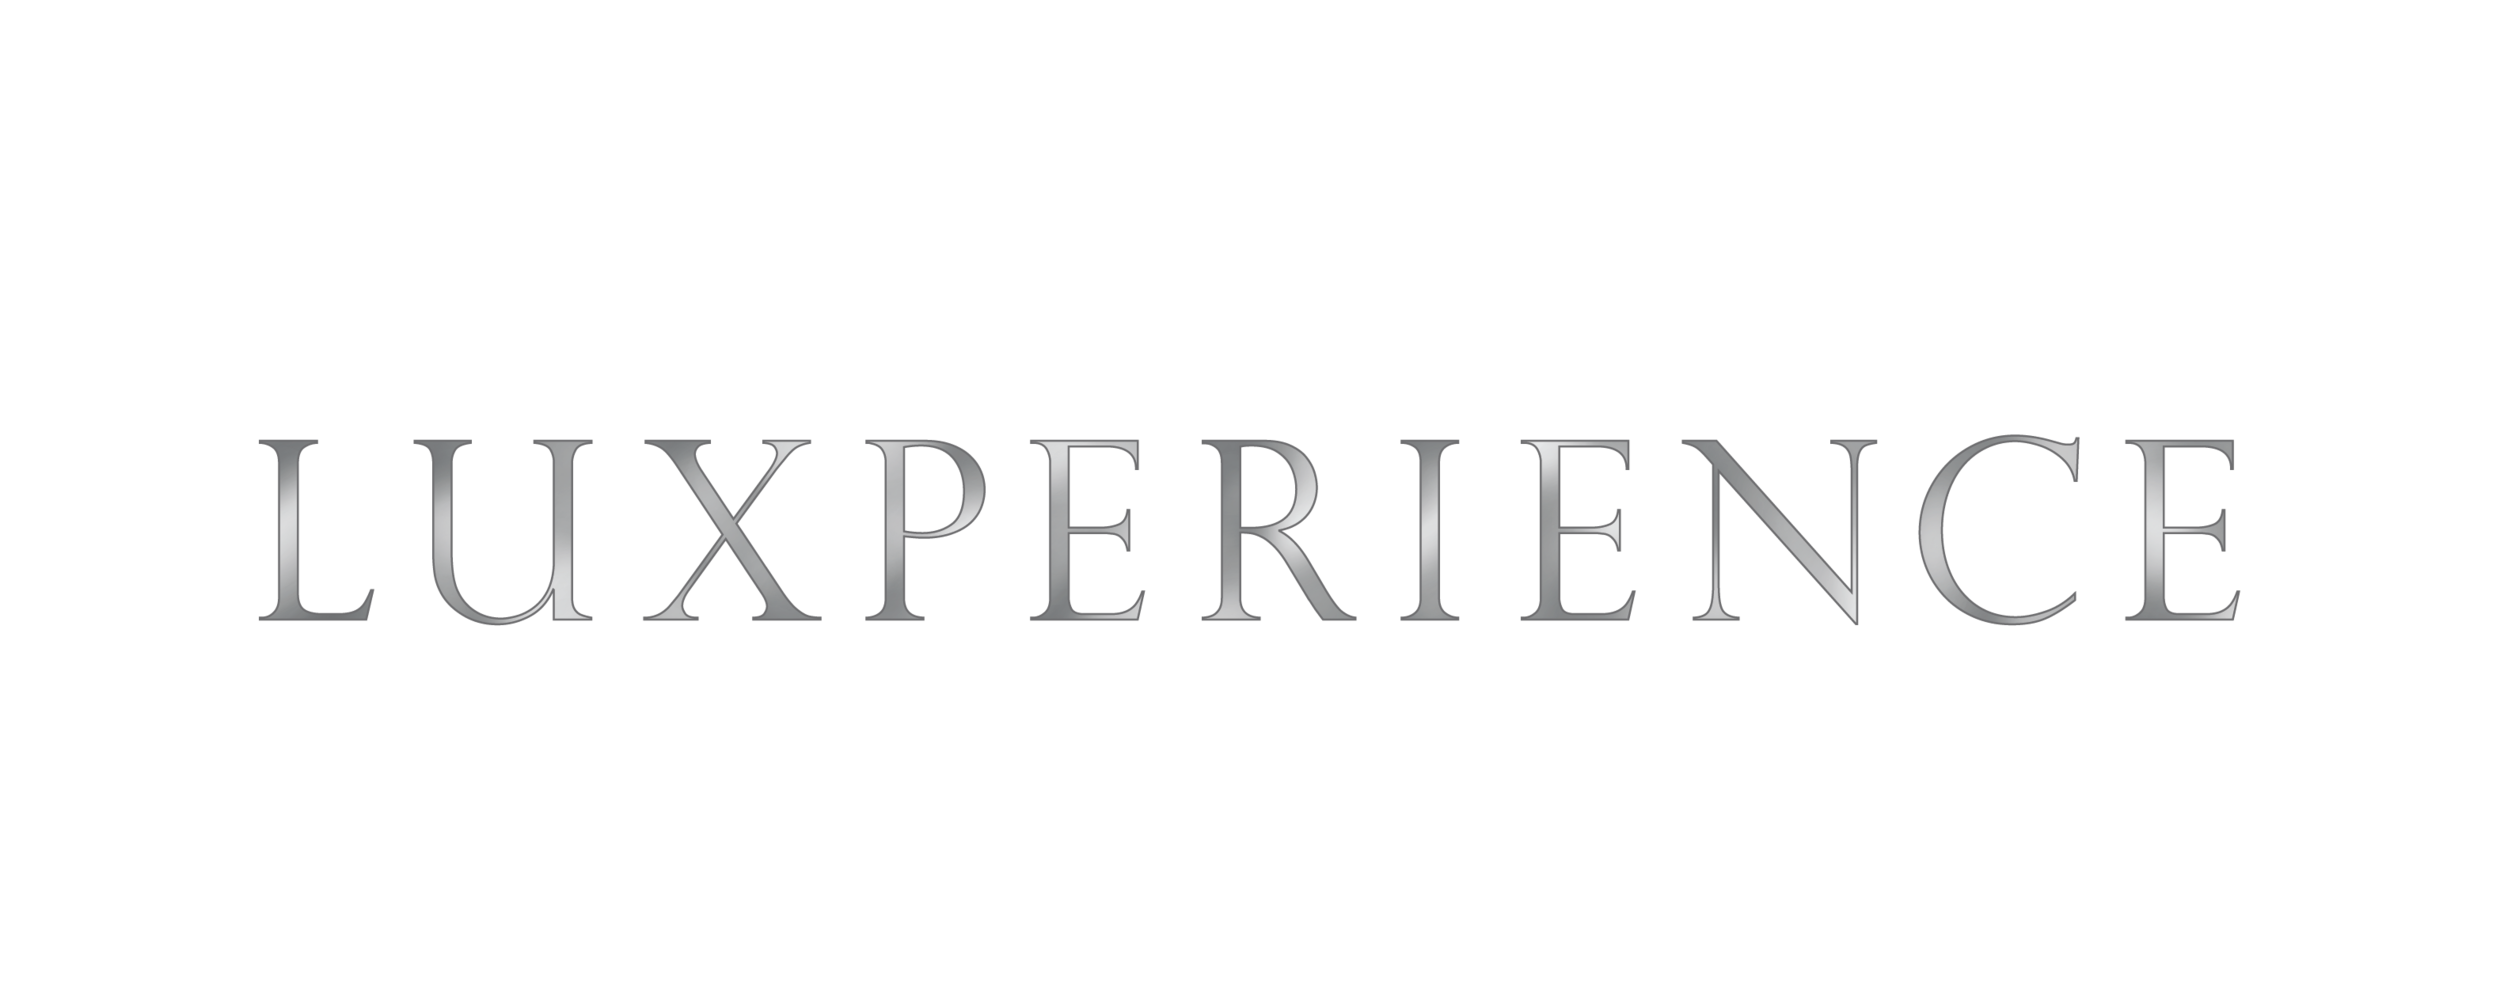 Luxperience Logotype_RGB.png